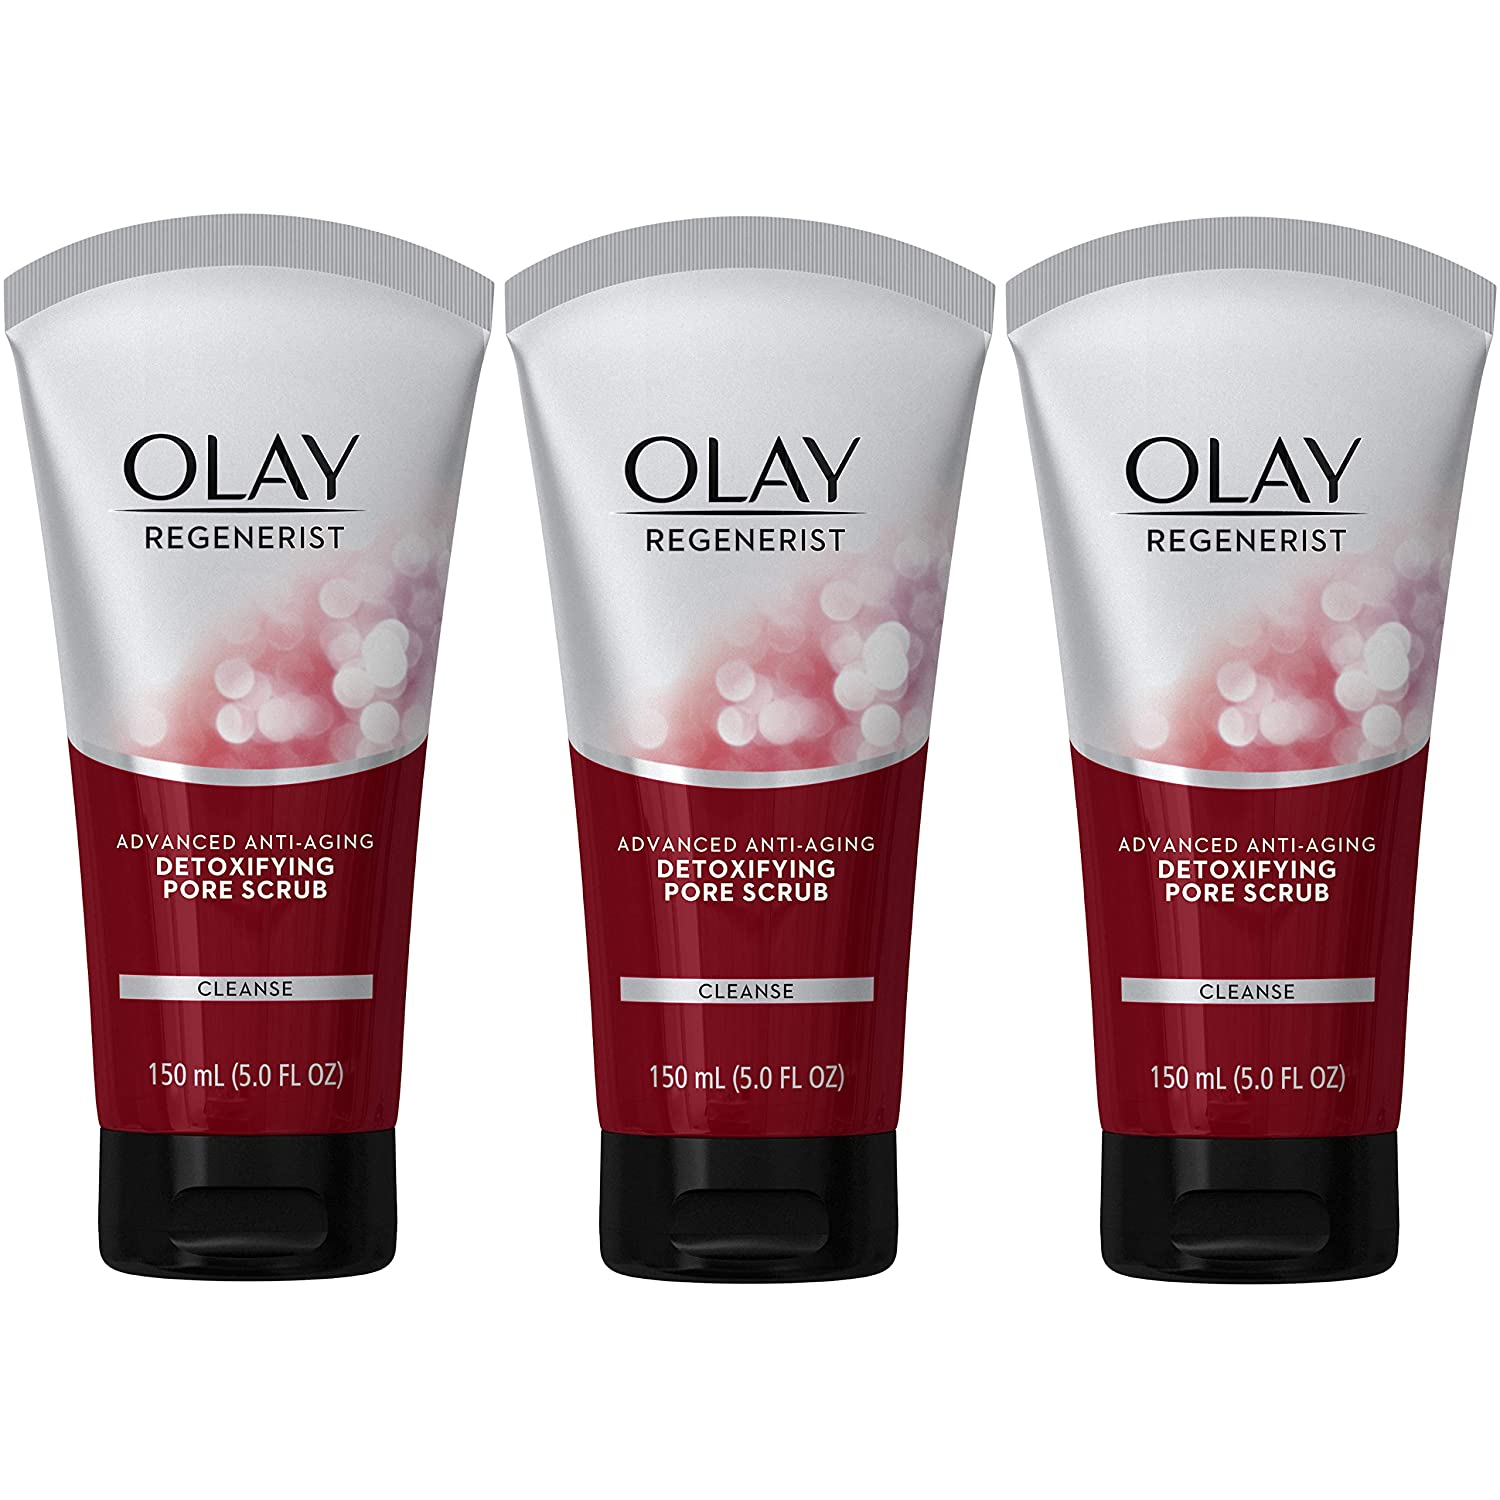 Facial Cleanser by Olay Regenerist, Detoxifying Pore Scrub & Exfoliator, 5 Oz (Pack of 3): Beauty